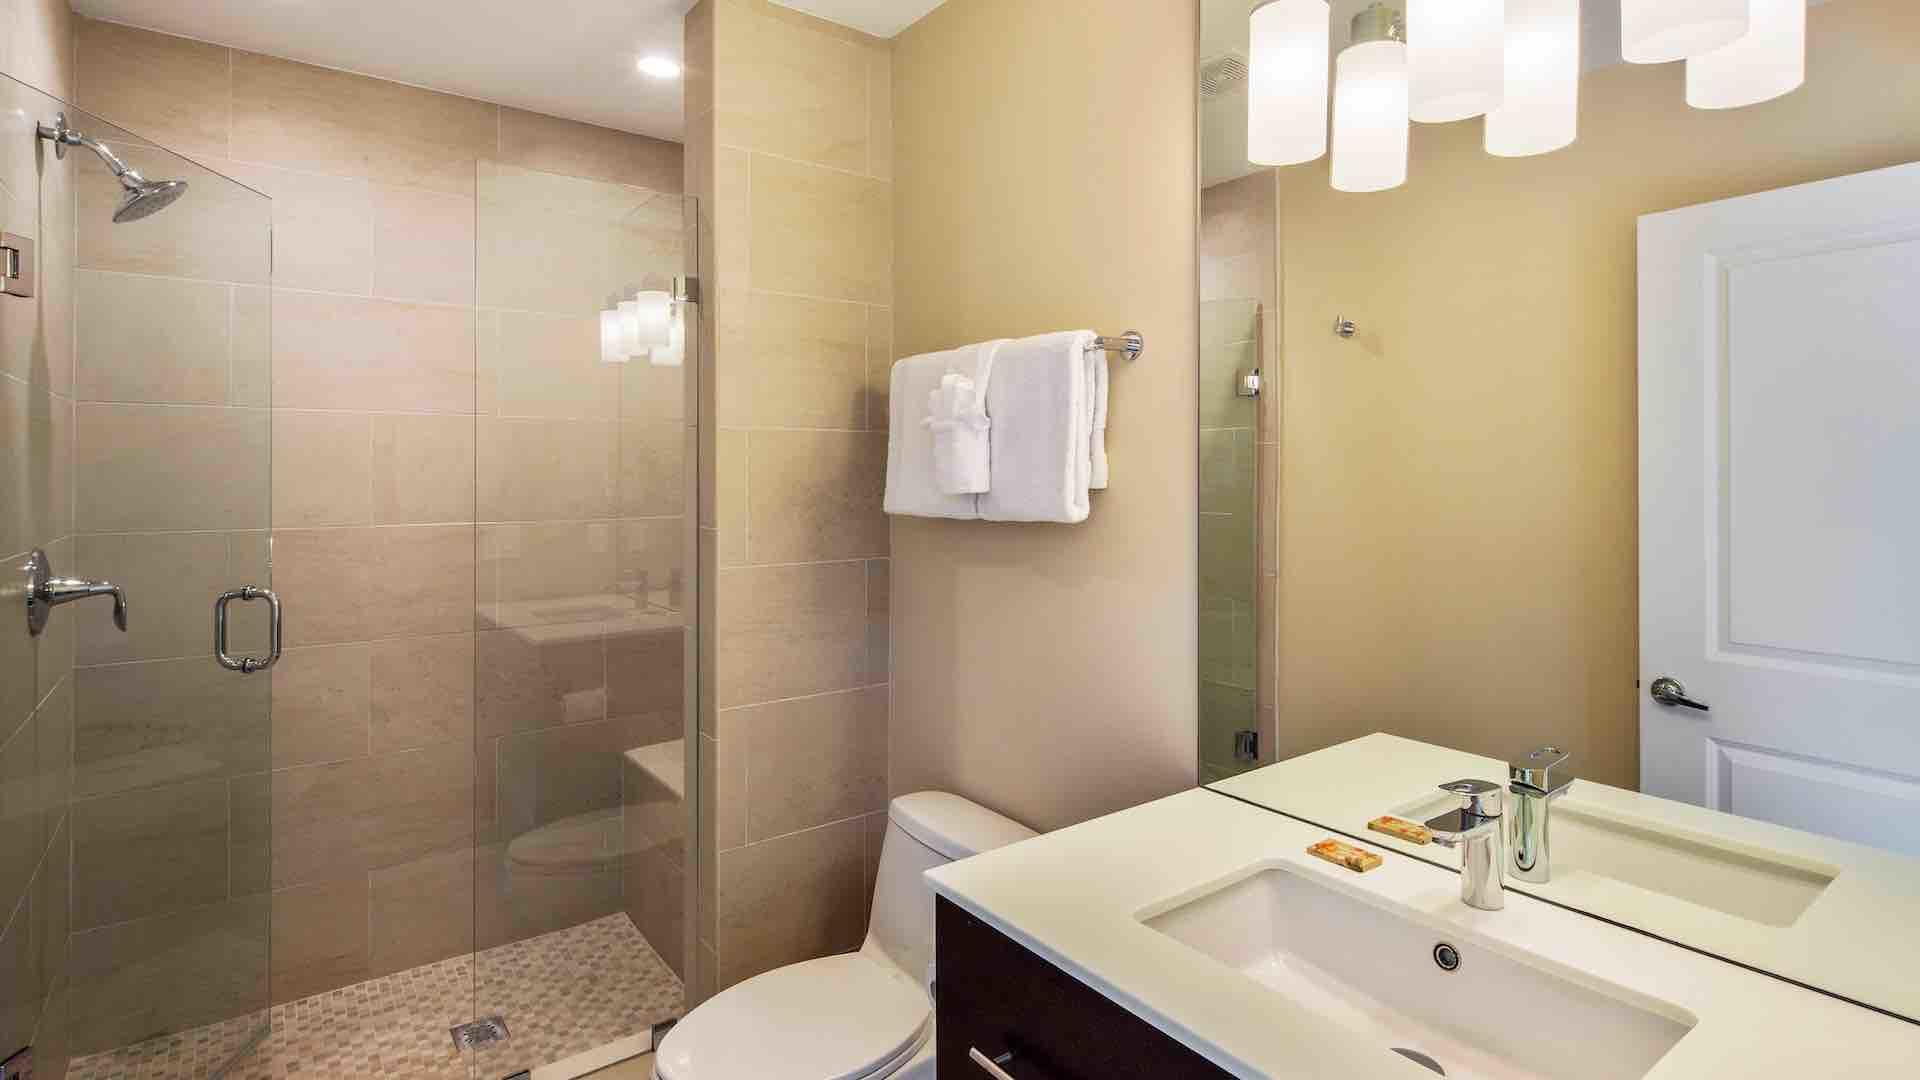 The second master bedroom has an en suite bathroom with frameless glass shower…